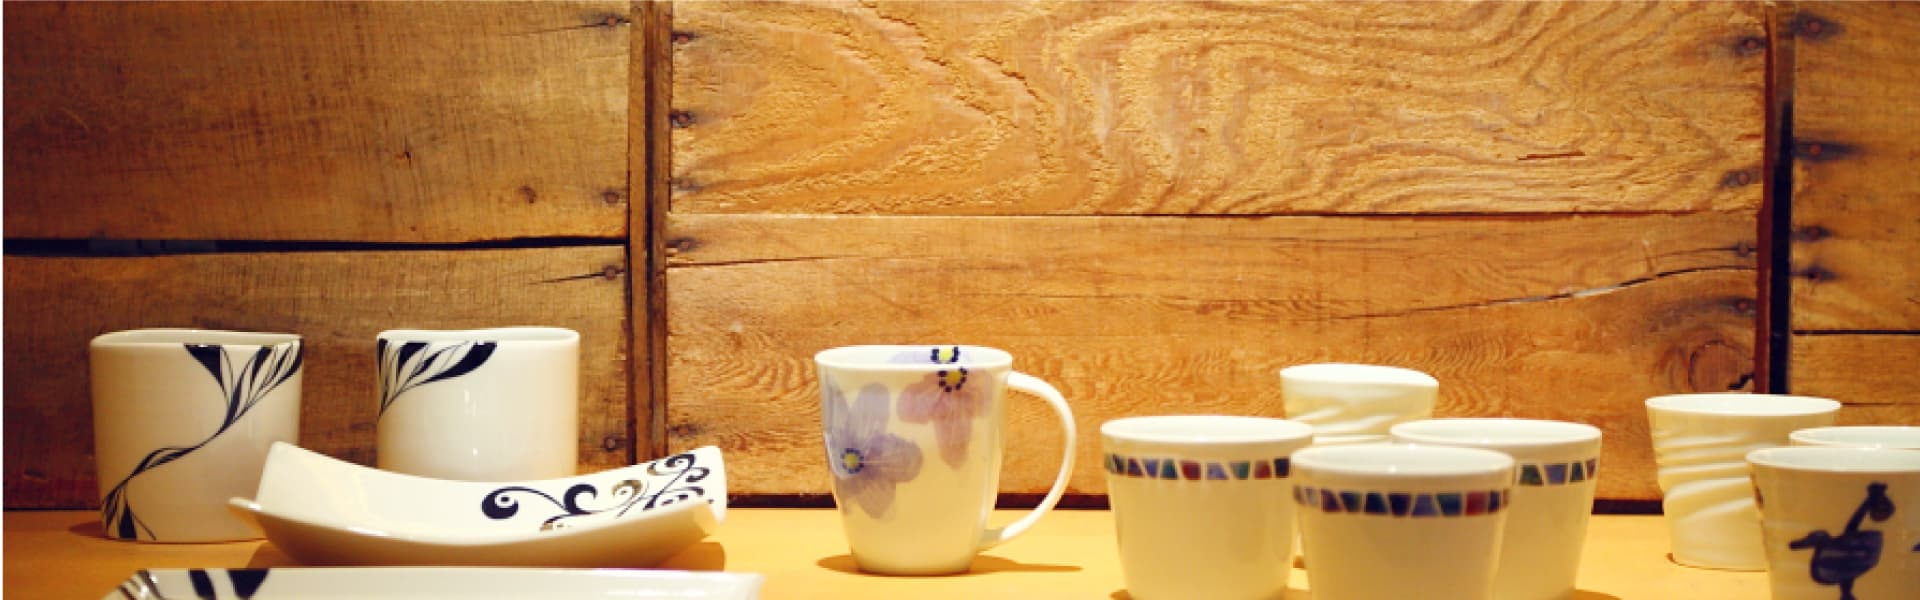 [Matsuyama / Dōgo and Tobe-yaki Tour] Another recommendation after the second day! A tour to experience the history of Dōgo and the pottery culture of Tobe-cho.